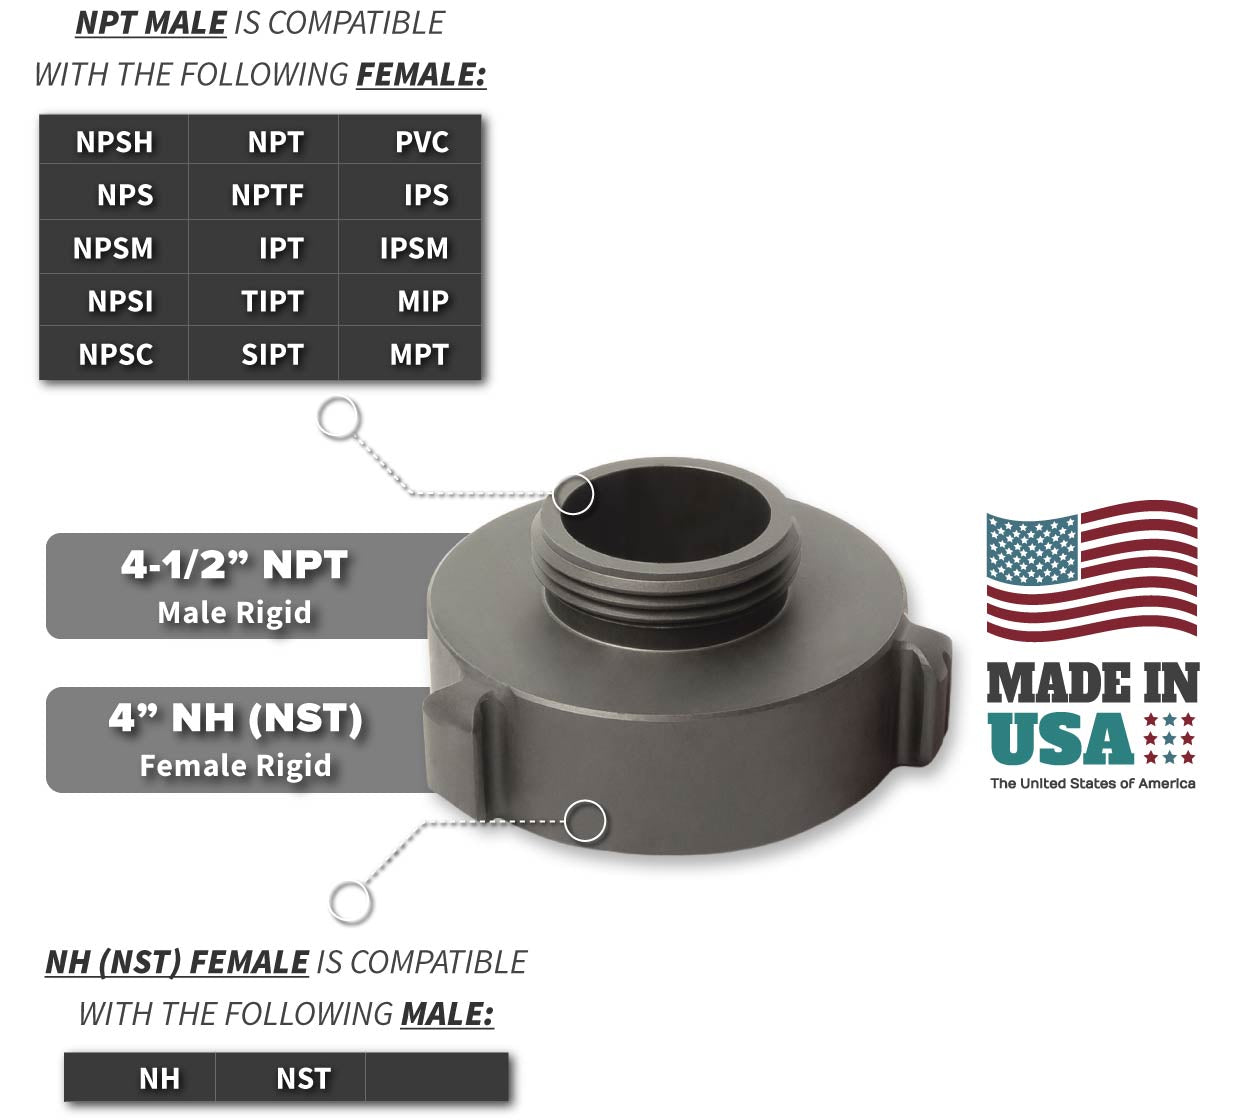 4 Inch NH-NST Female x 4.5 Inch NPT Male Compatibility Thread Chart